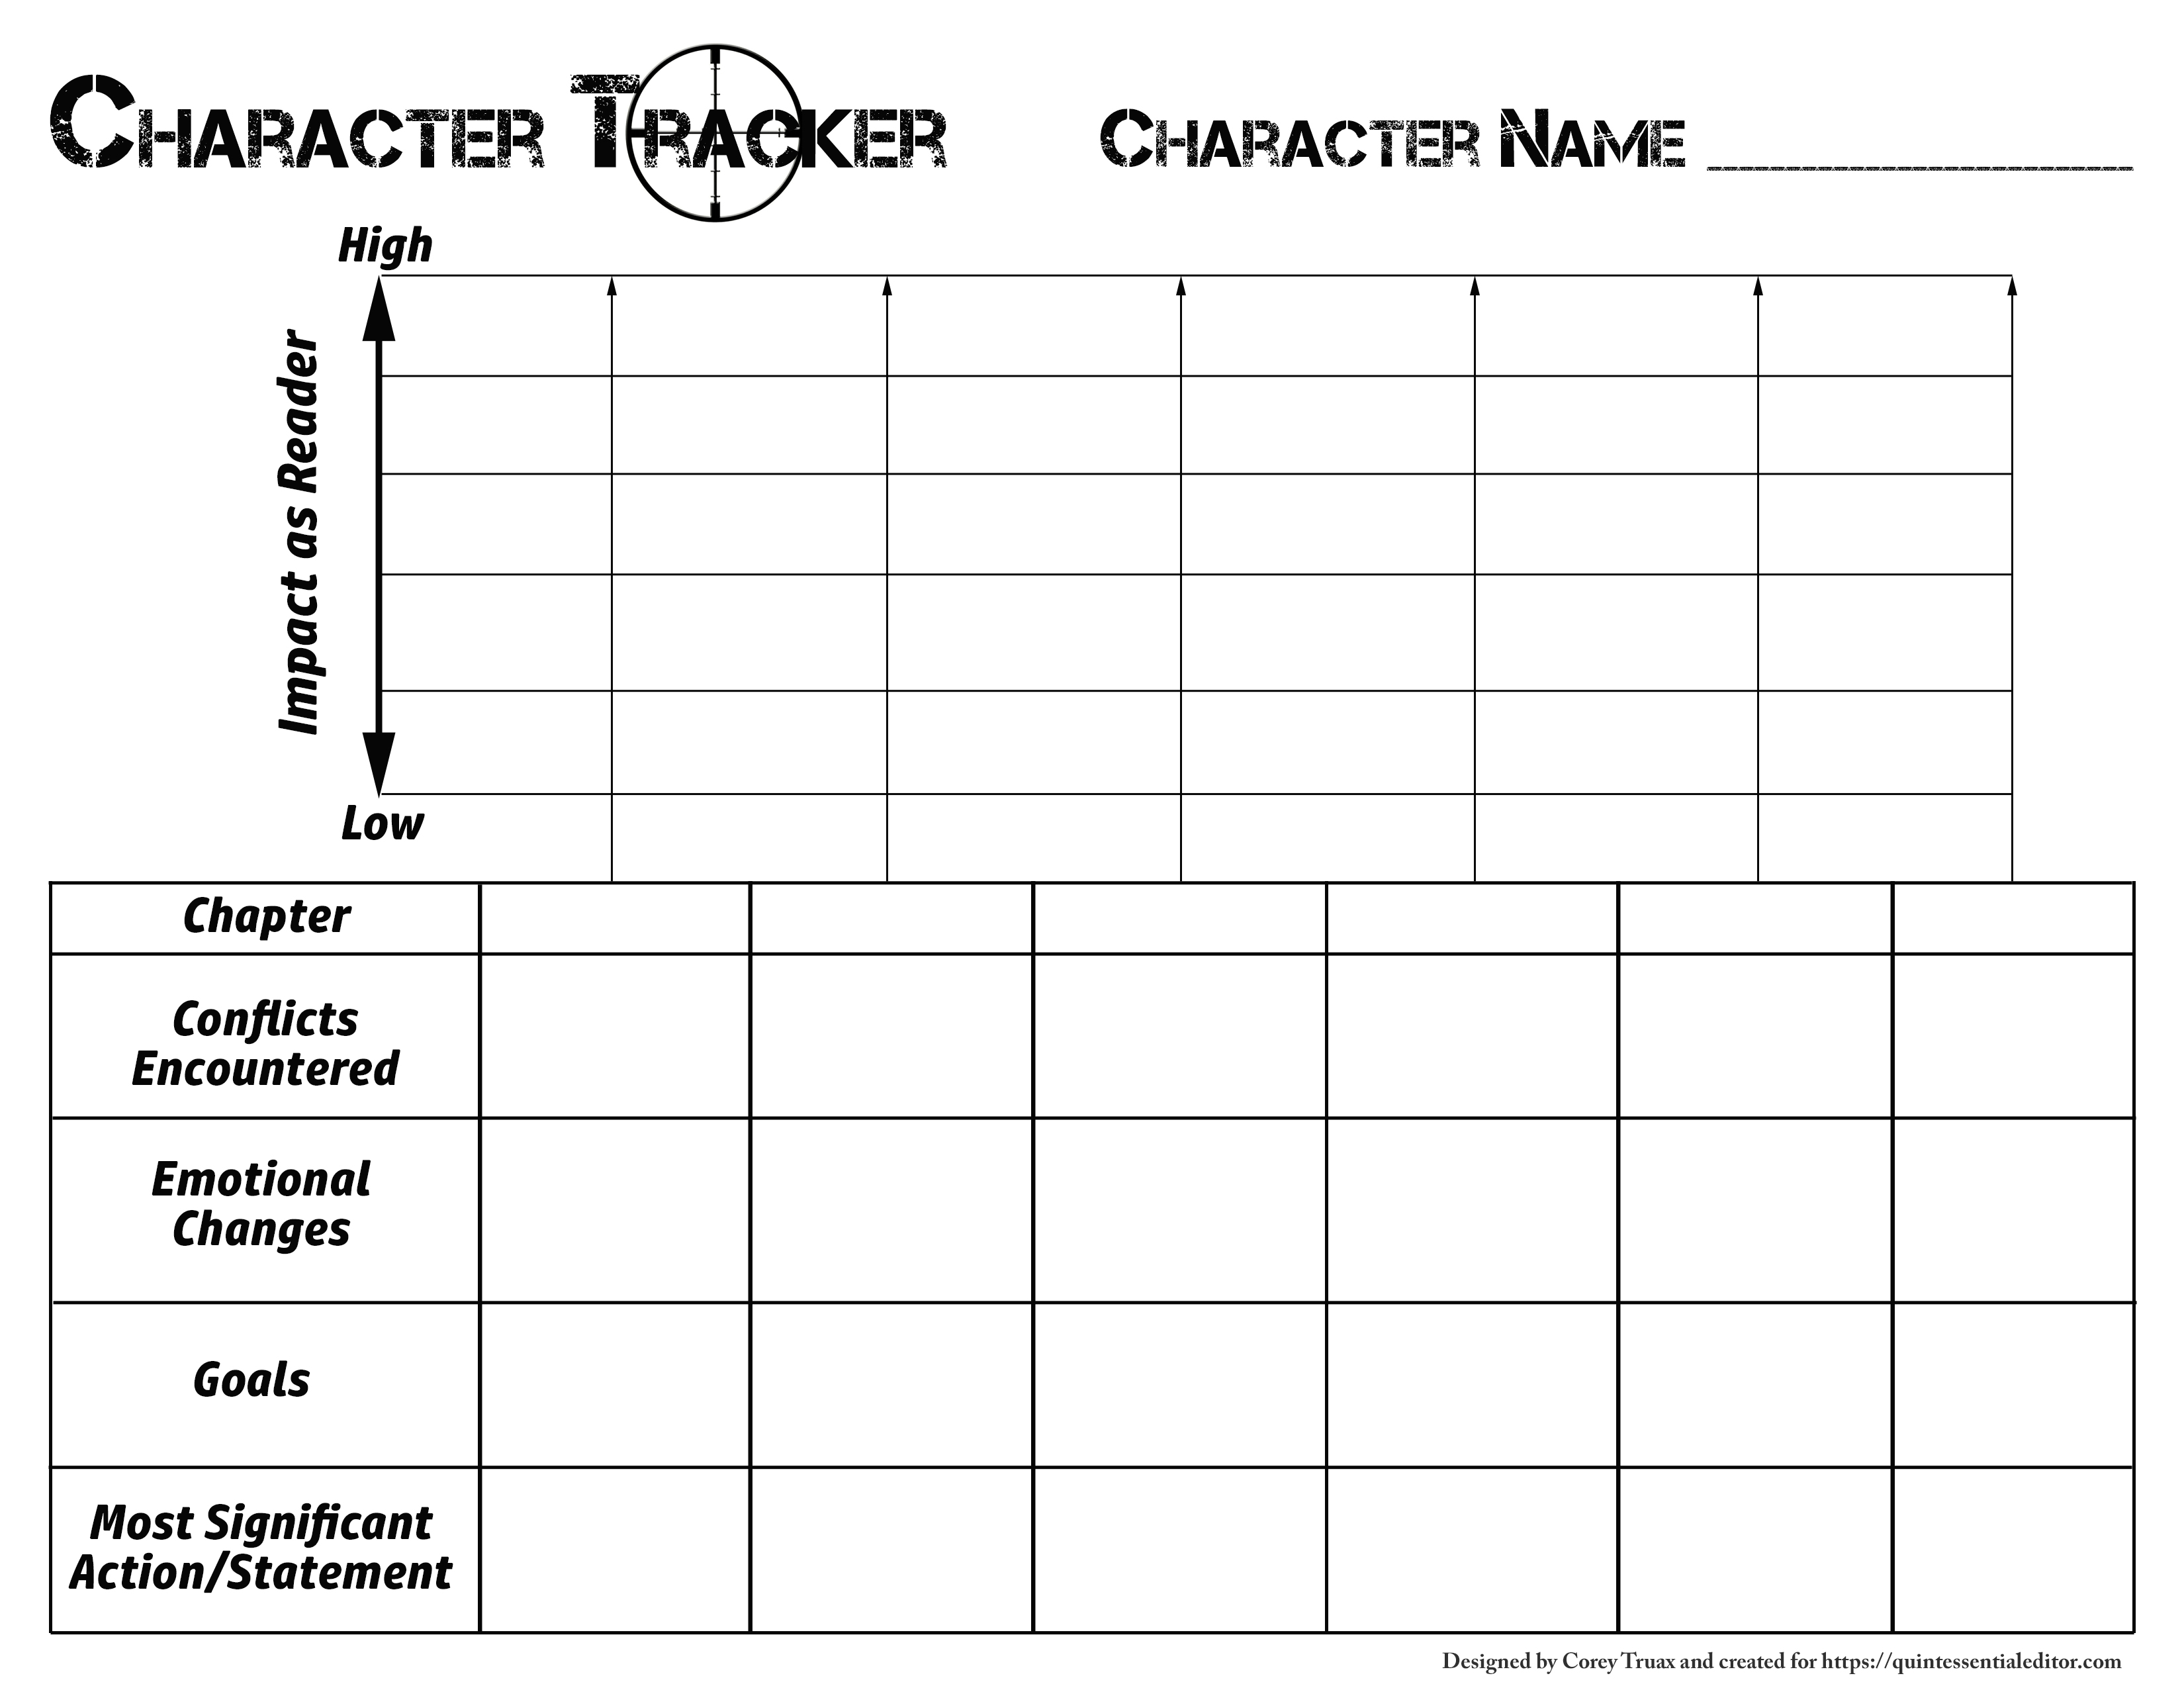 Template For Tracking Character Arcs Corey D Truax